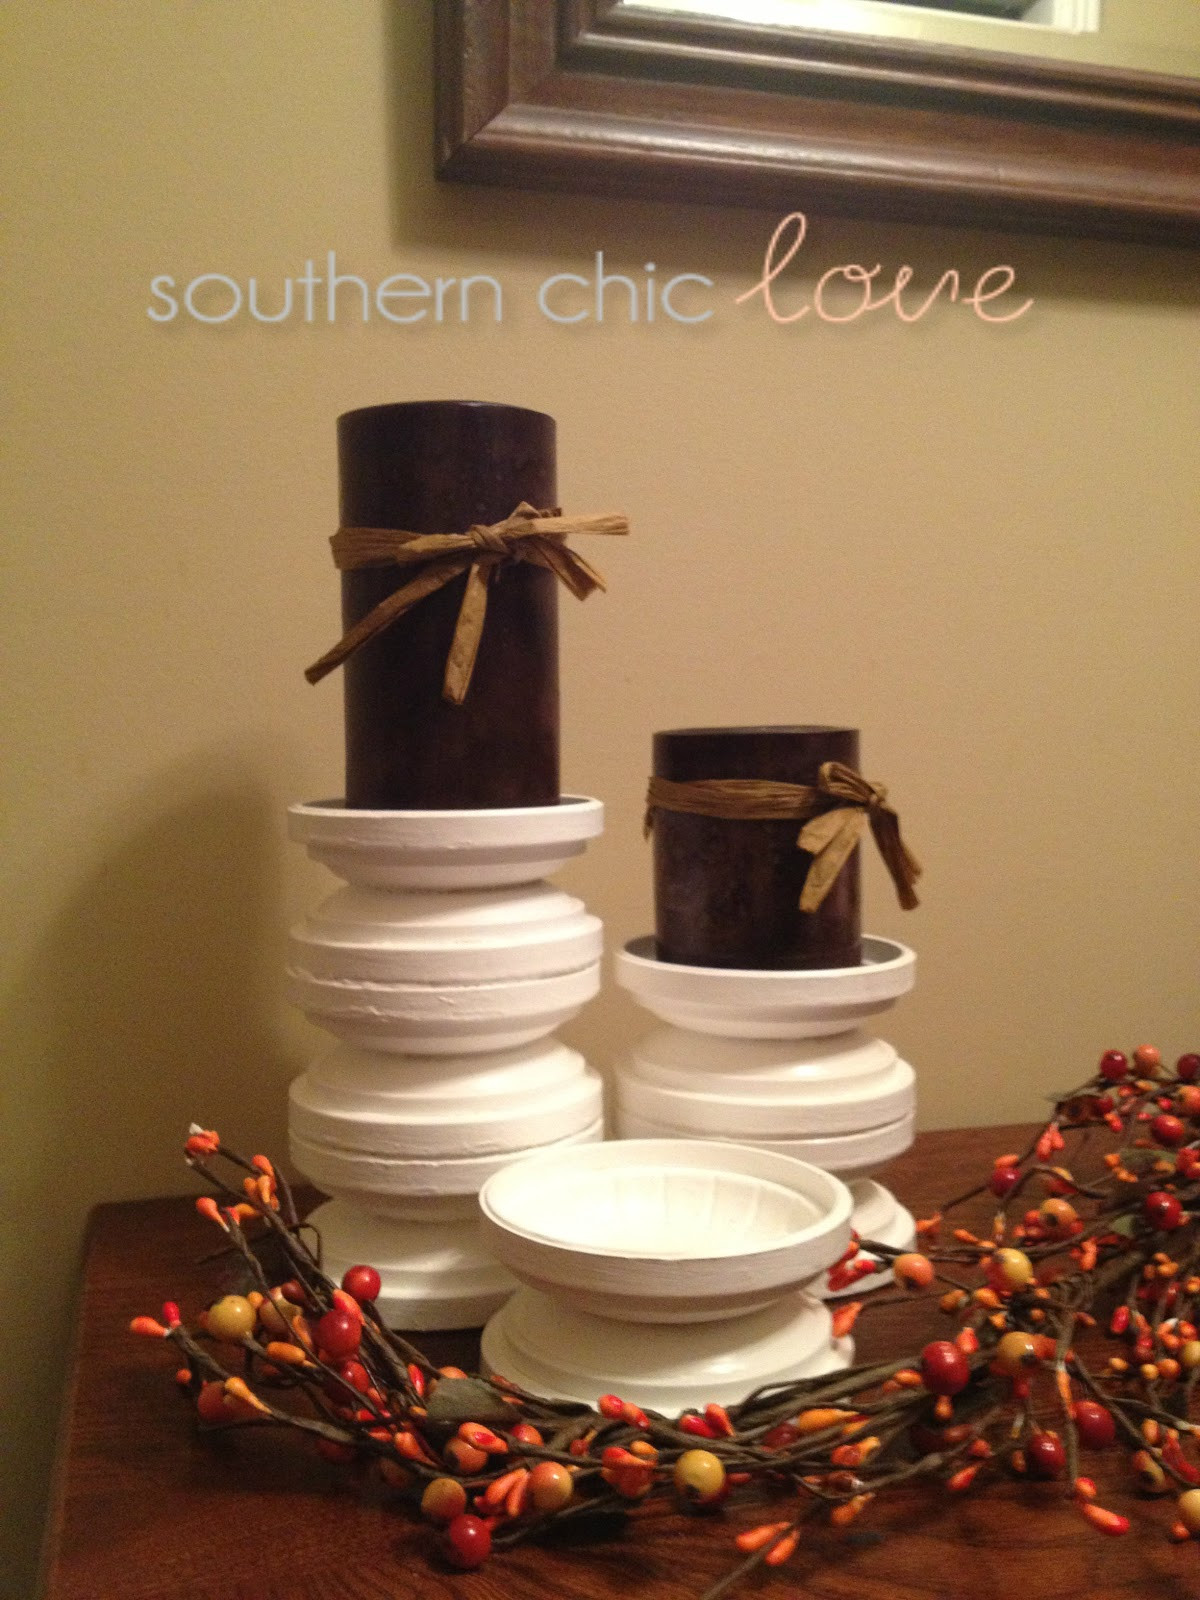 Best ideas about DIY Candle Holders . Save or Pin Southern Chic Love diy candle holders Now.